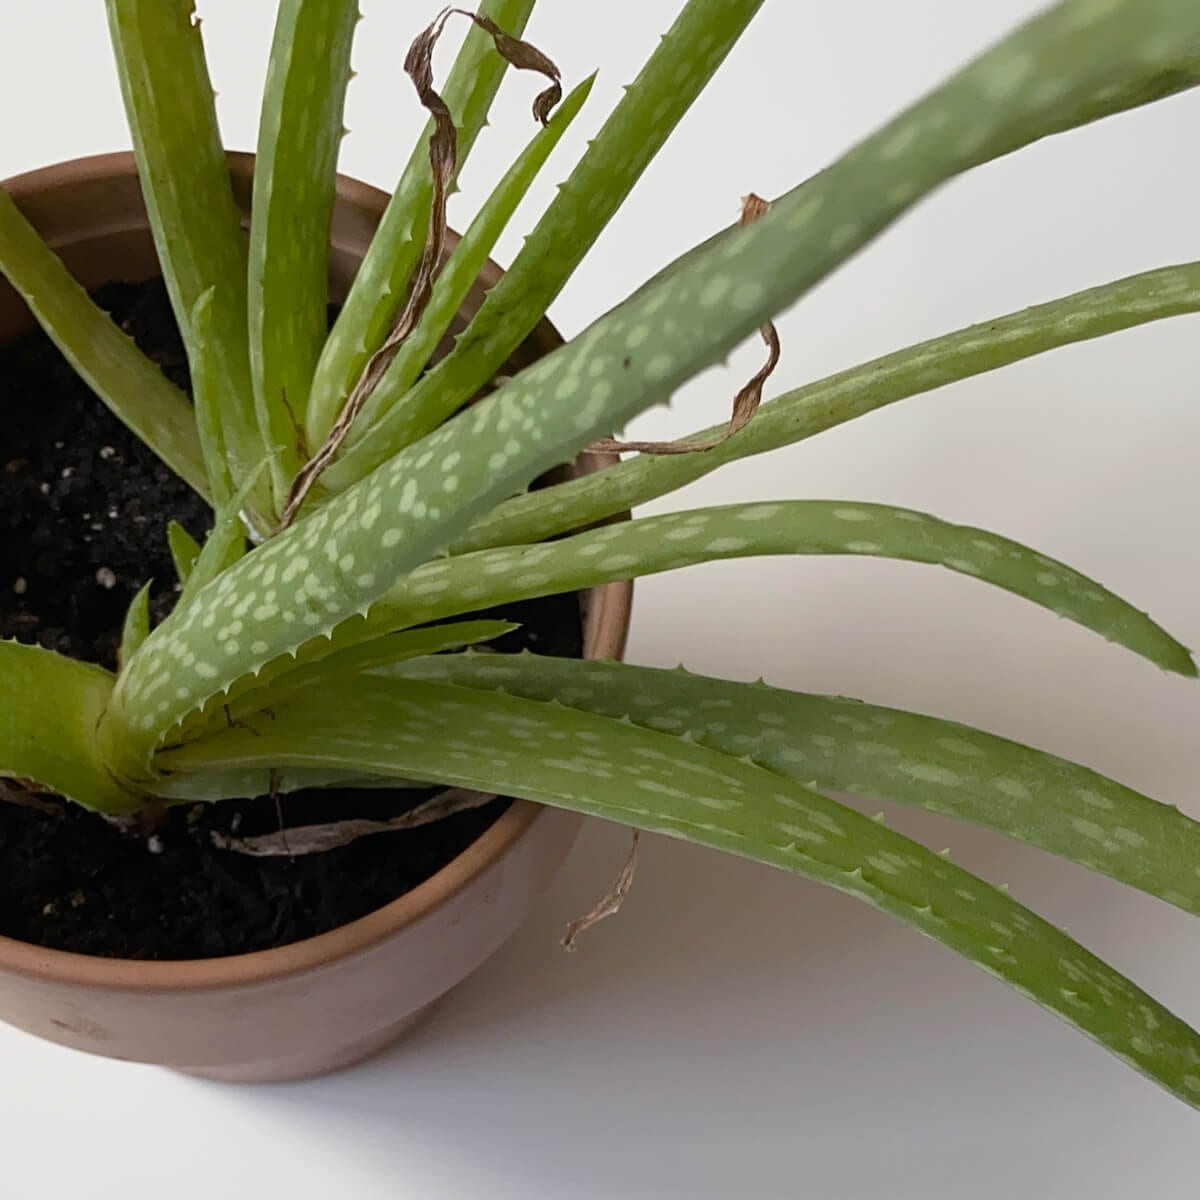 aloe vera plant growing in soil, planting pot